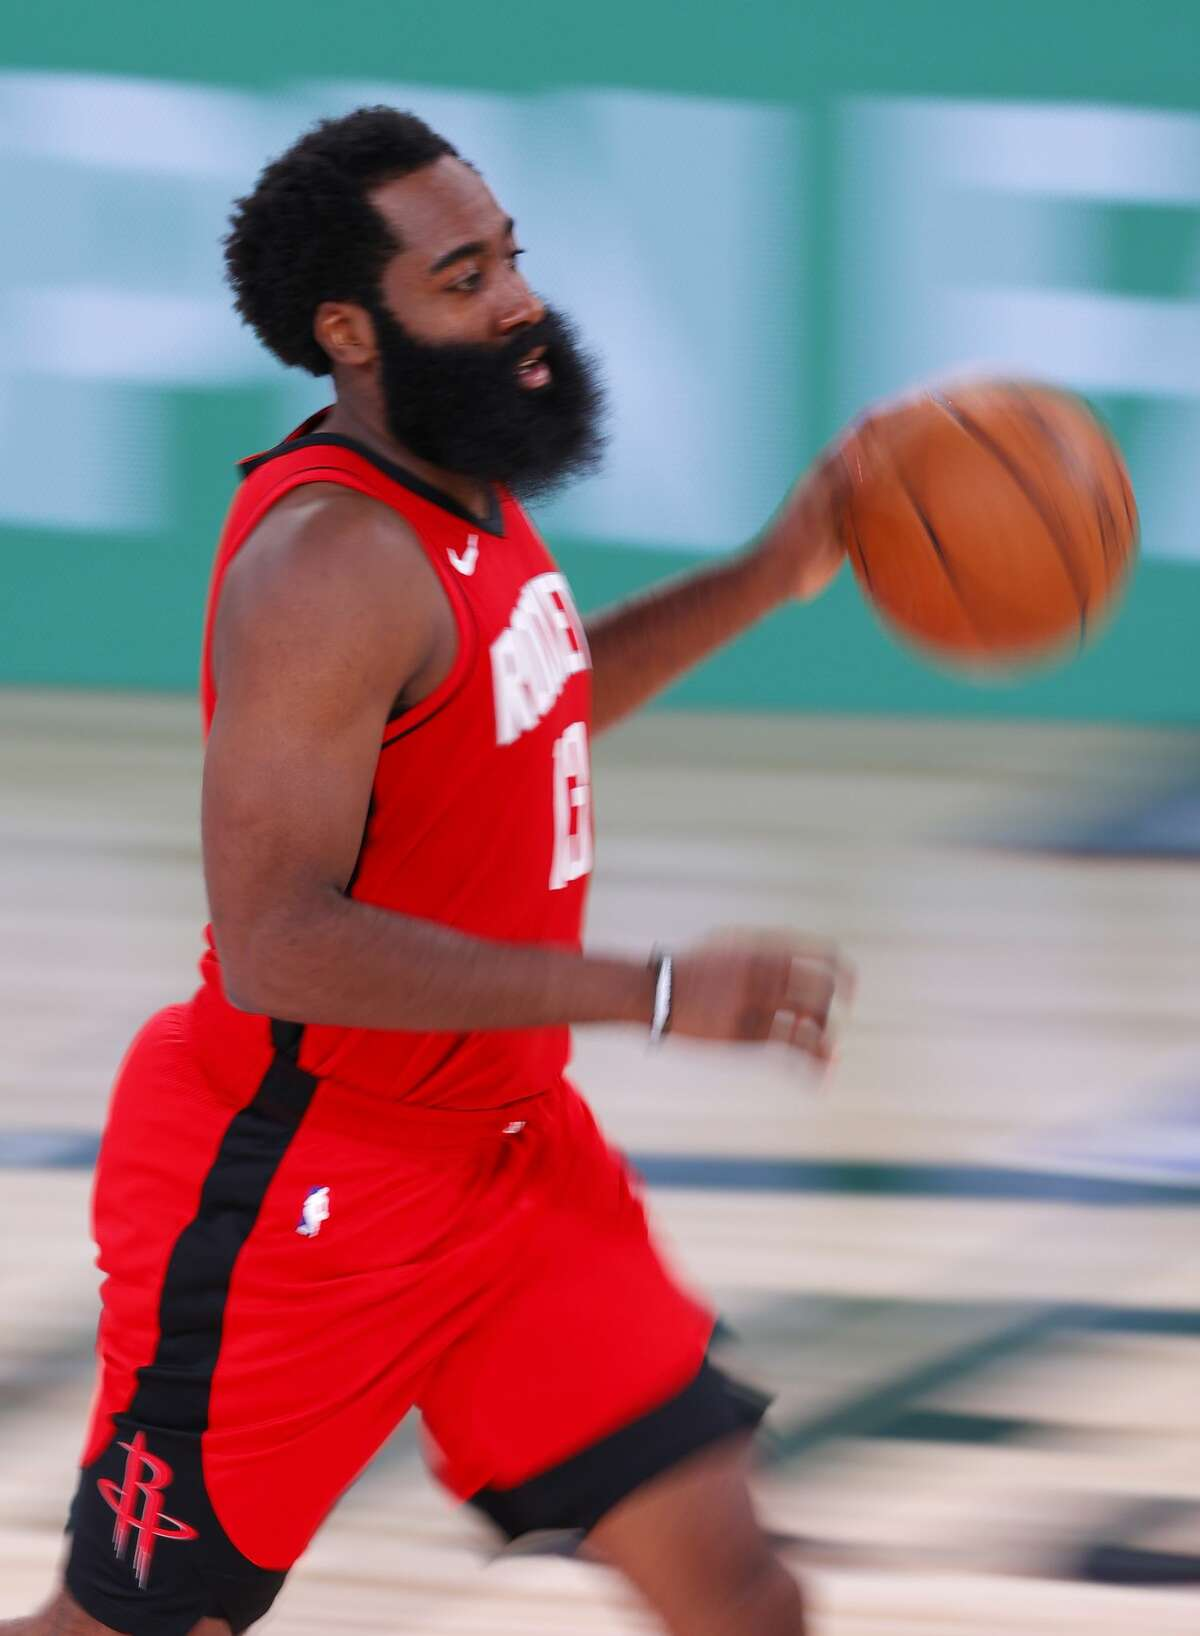 LAKE BUENA VISTA, FLORIDA - AUGUST 02: James Harden #13 of the Houston Rockets moves the ball against the Milwaukee Bucks at The Arena at ESPN Wide World Of Sports Complex on August 02, 2020 in Lake Buena Vista, Florida. NOTE TO USER: User expressly acknowledges and agrees that, by downloading and or using this photograph, User is consenting to the terms and conditions of the Getty Images License Agreement. (Photo by Mike Ehrmann/Getty Images)